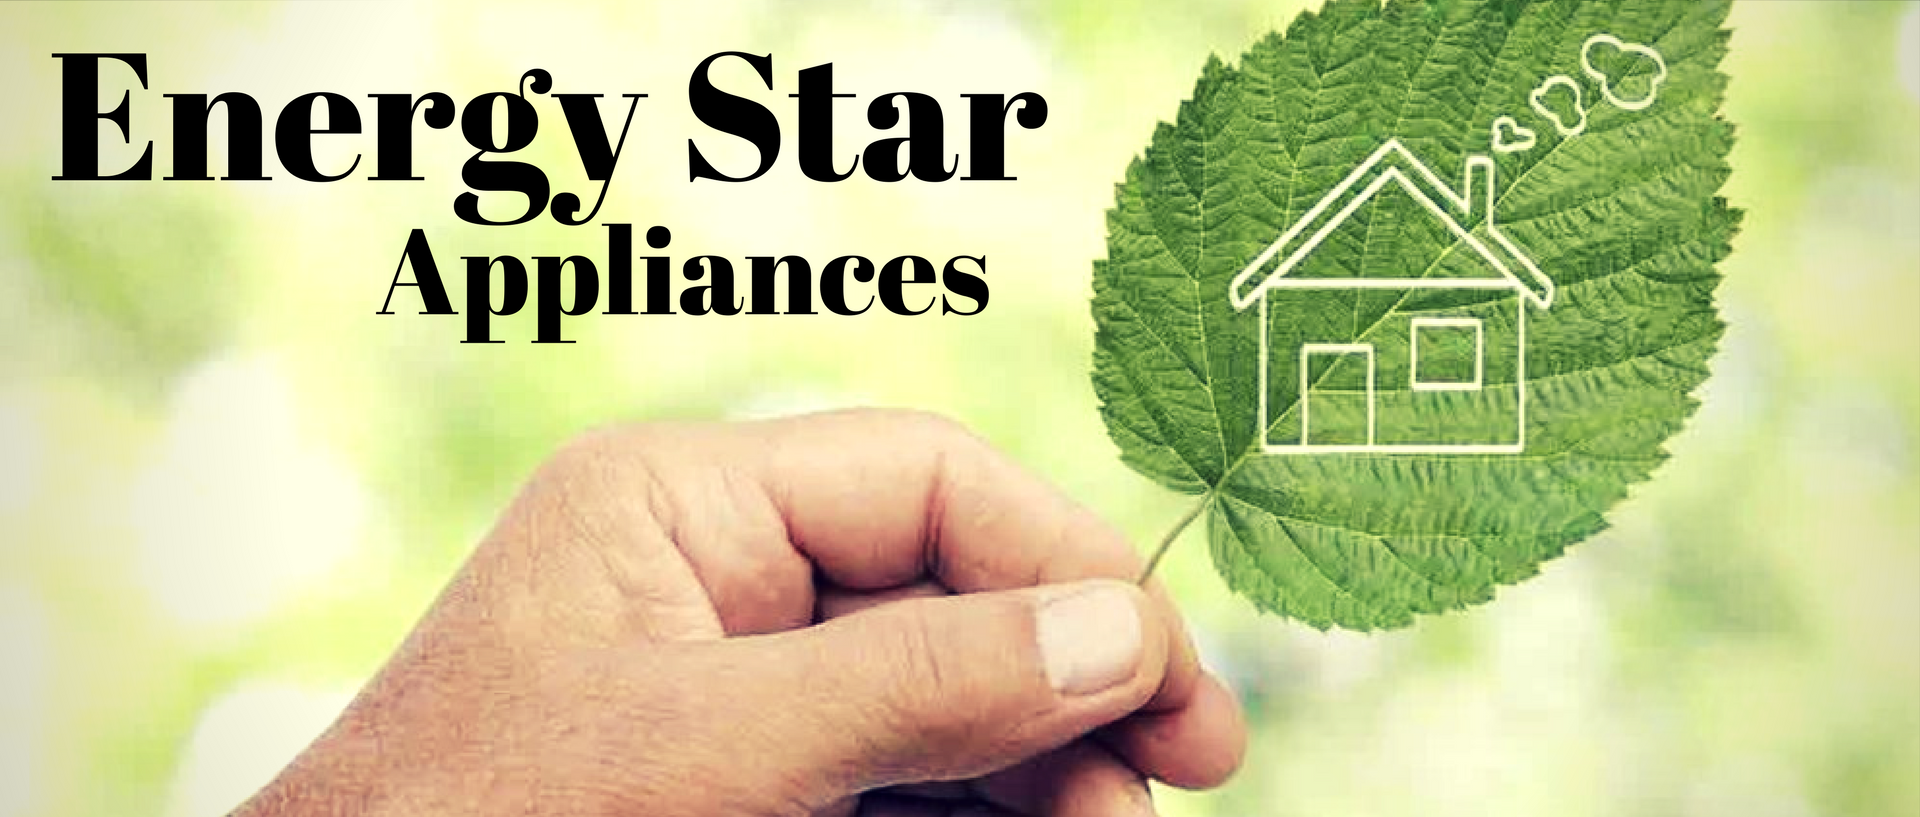 Energy Star appliances Banner